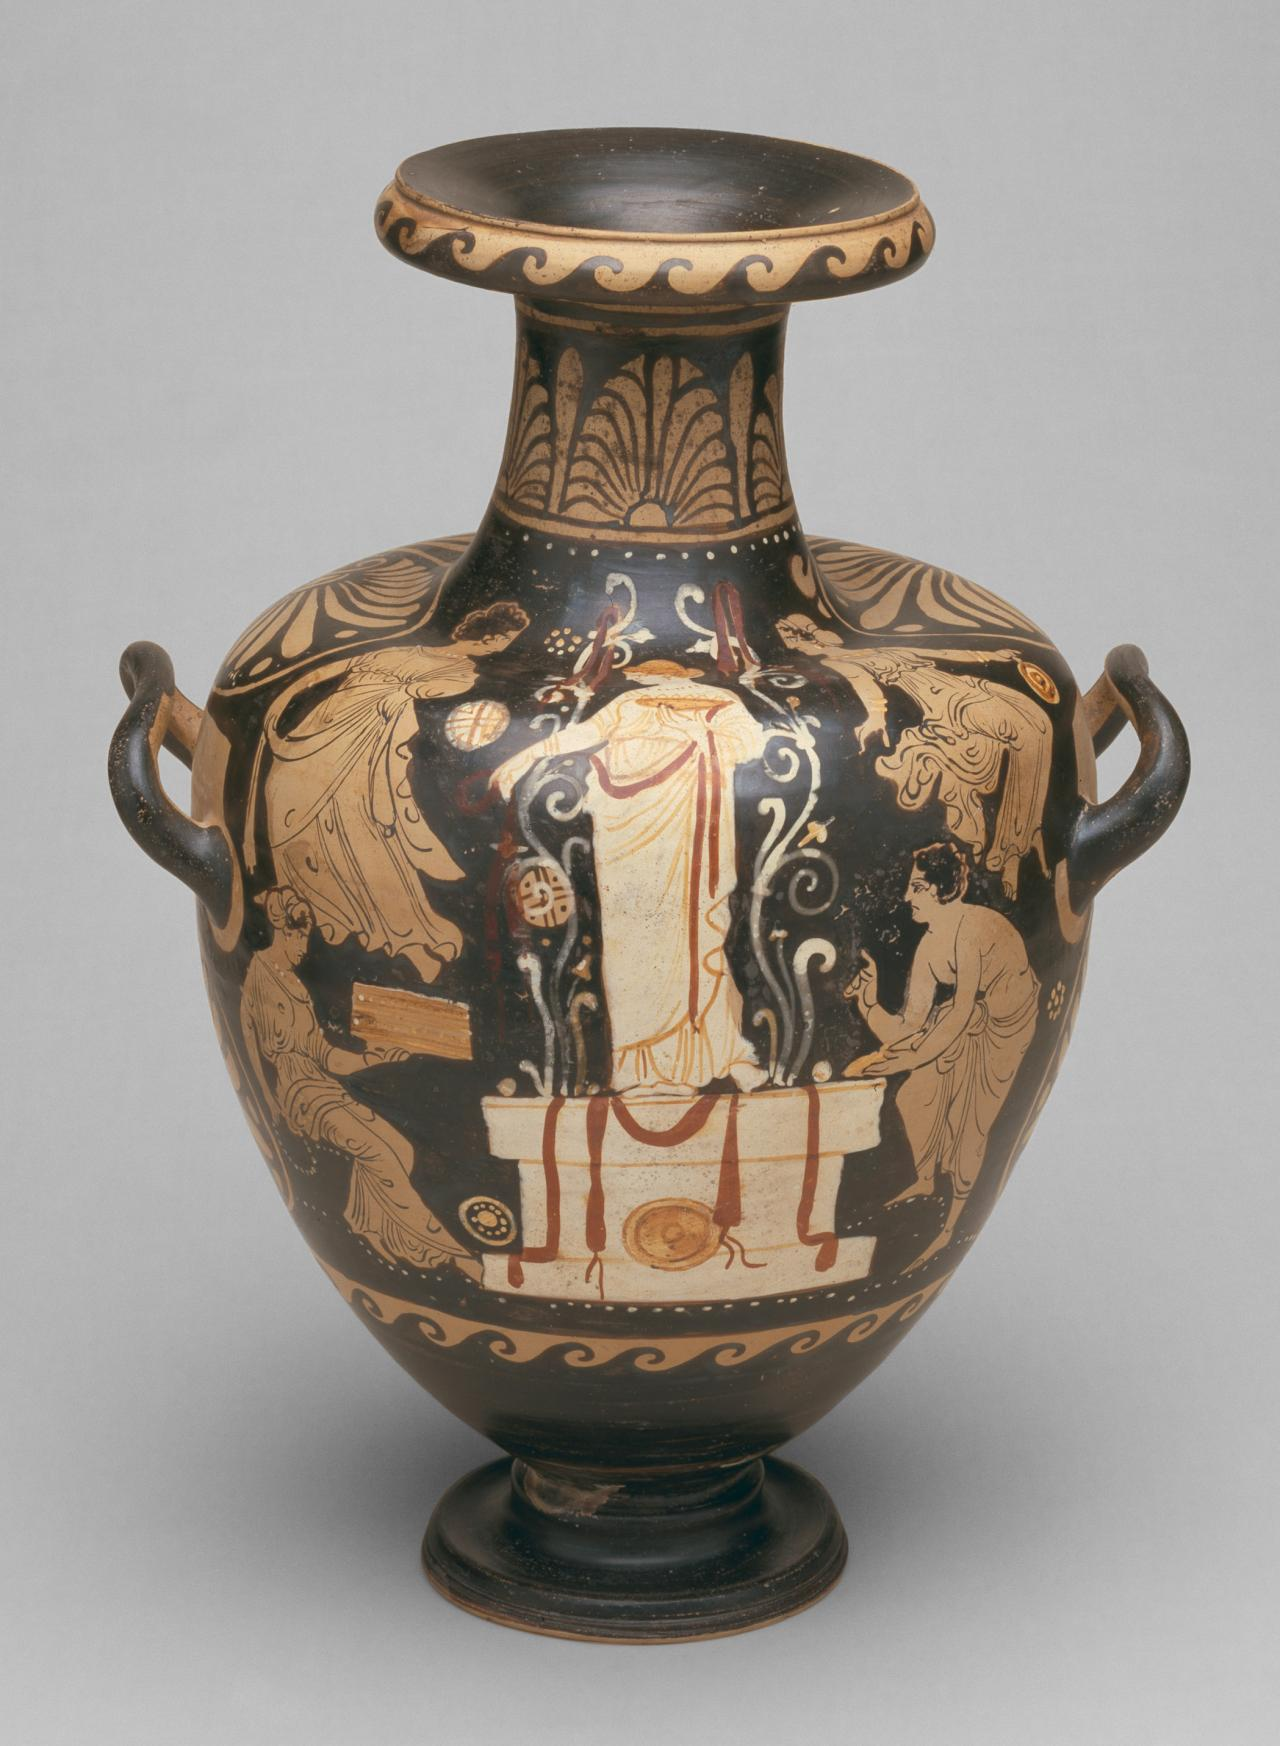 Hydria (Campanian red-figure ware)